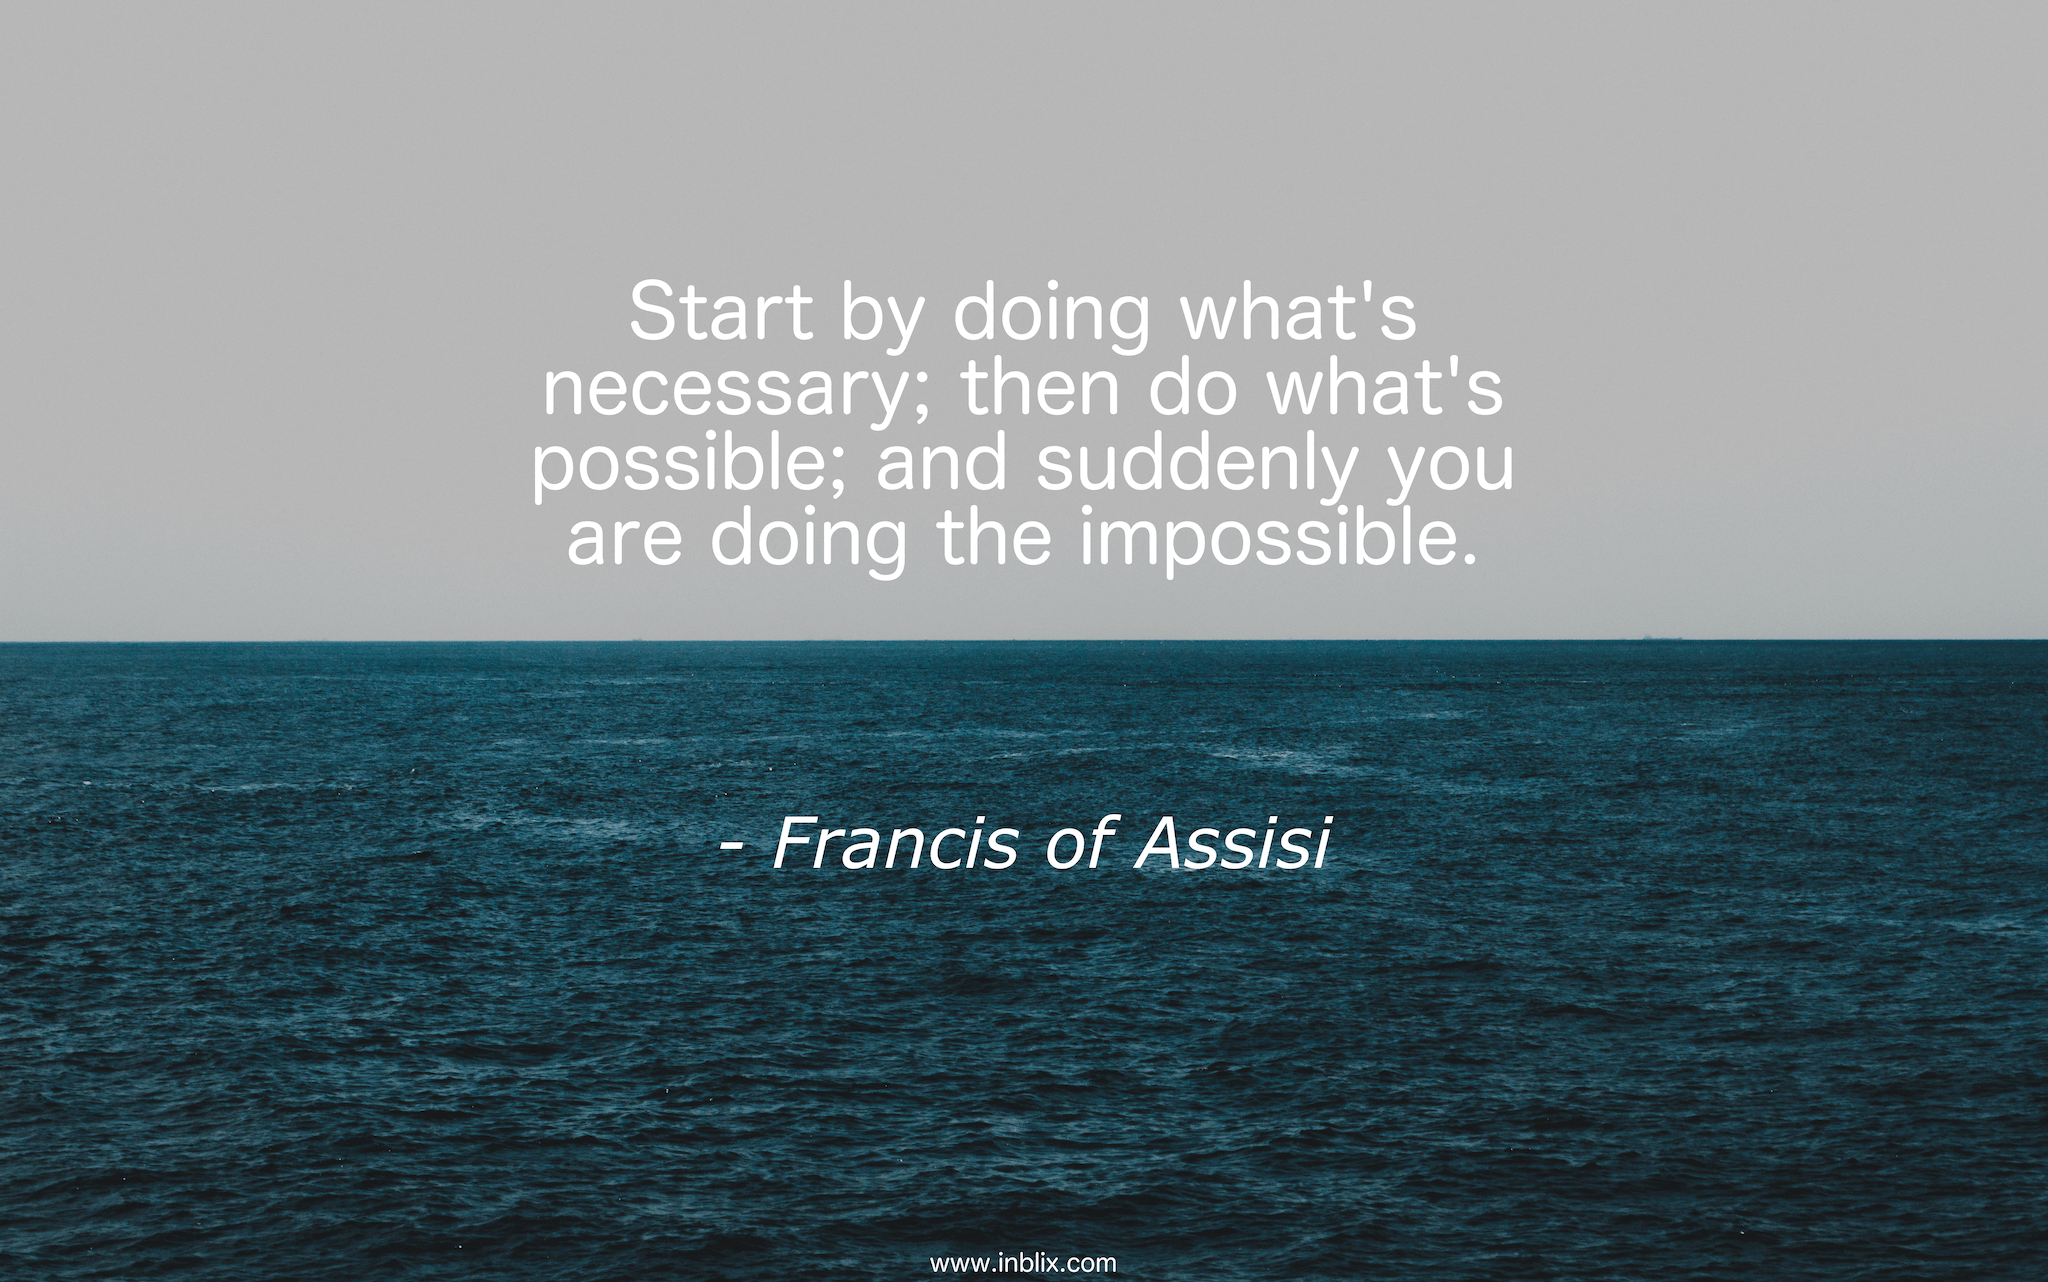 Start by doing what's necessary; then do what's possible; and suddenly you are doing the impossible.